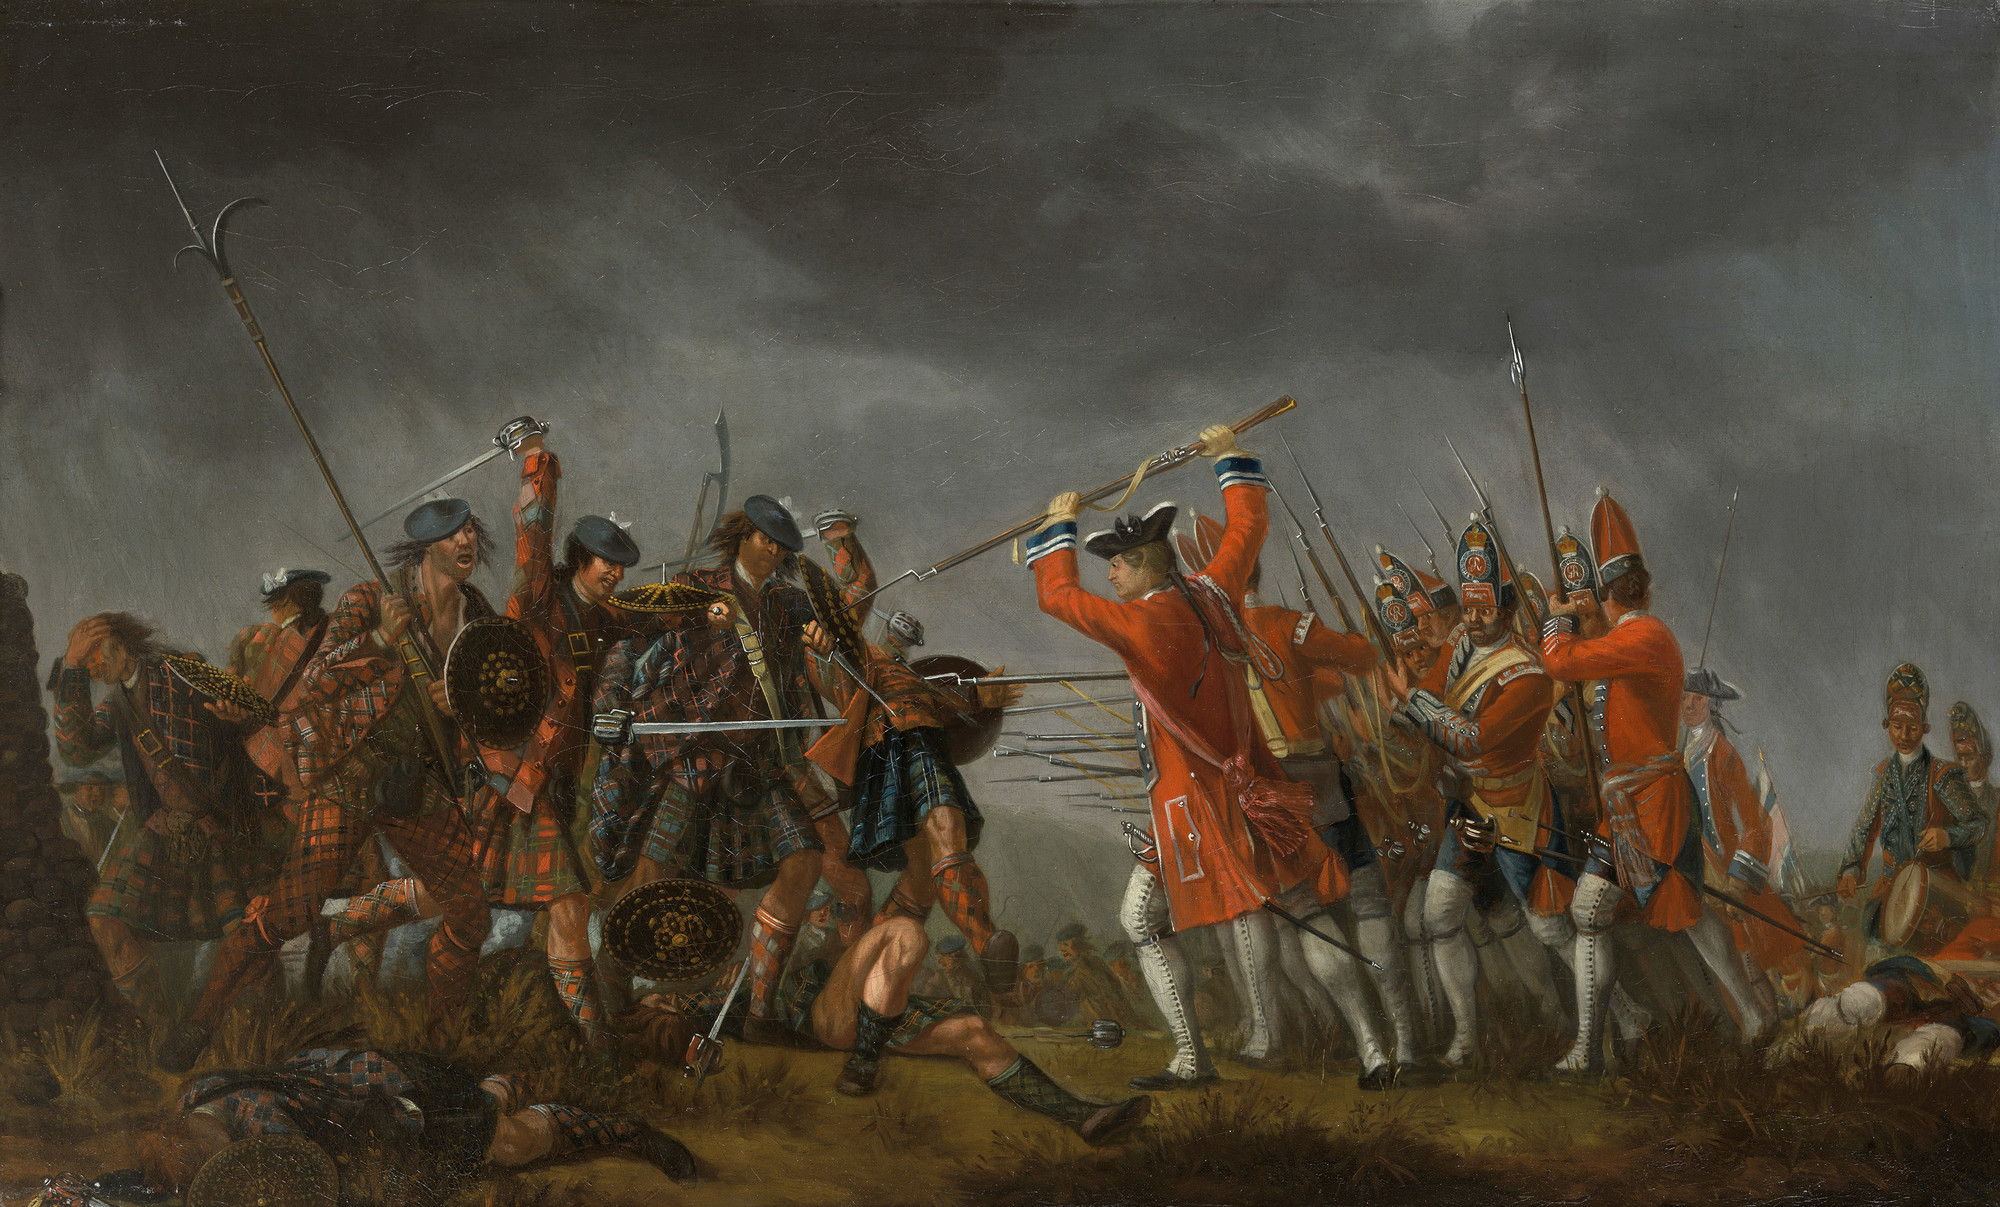 Battle of Culloden (1746), a painting by David Morier (taken from Wikipedia).